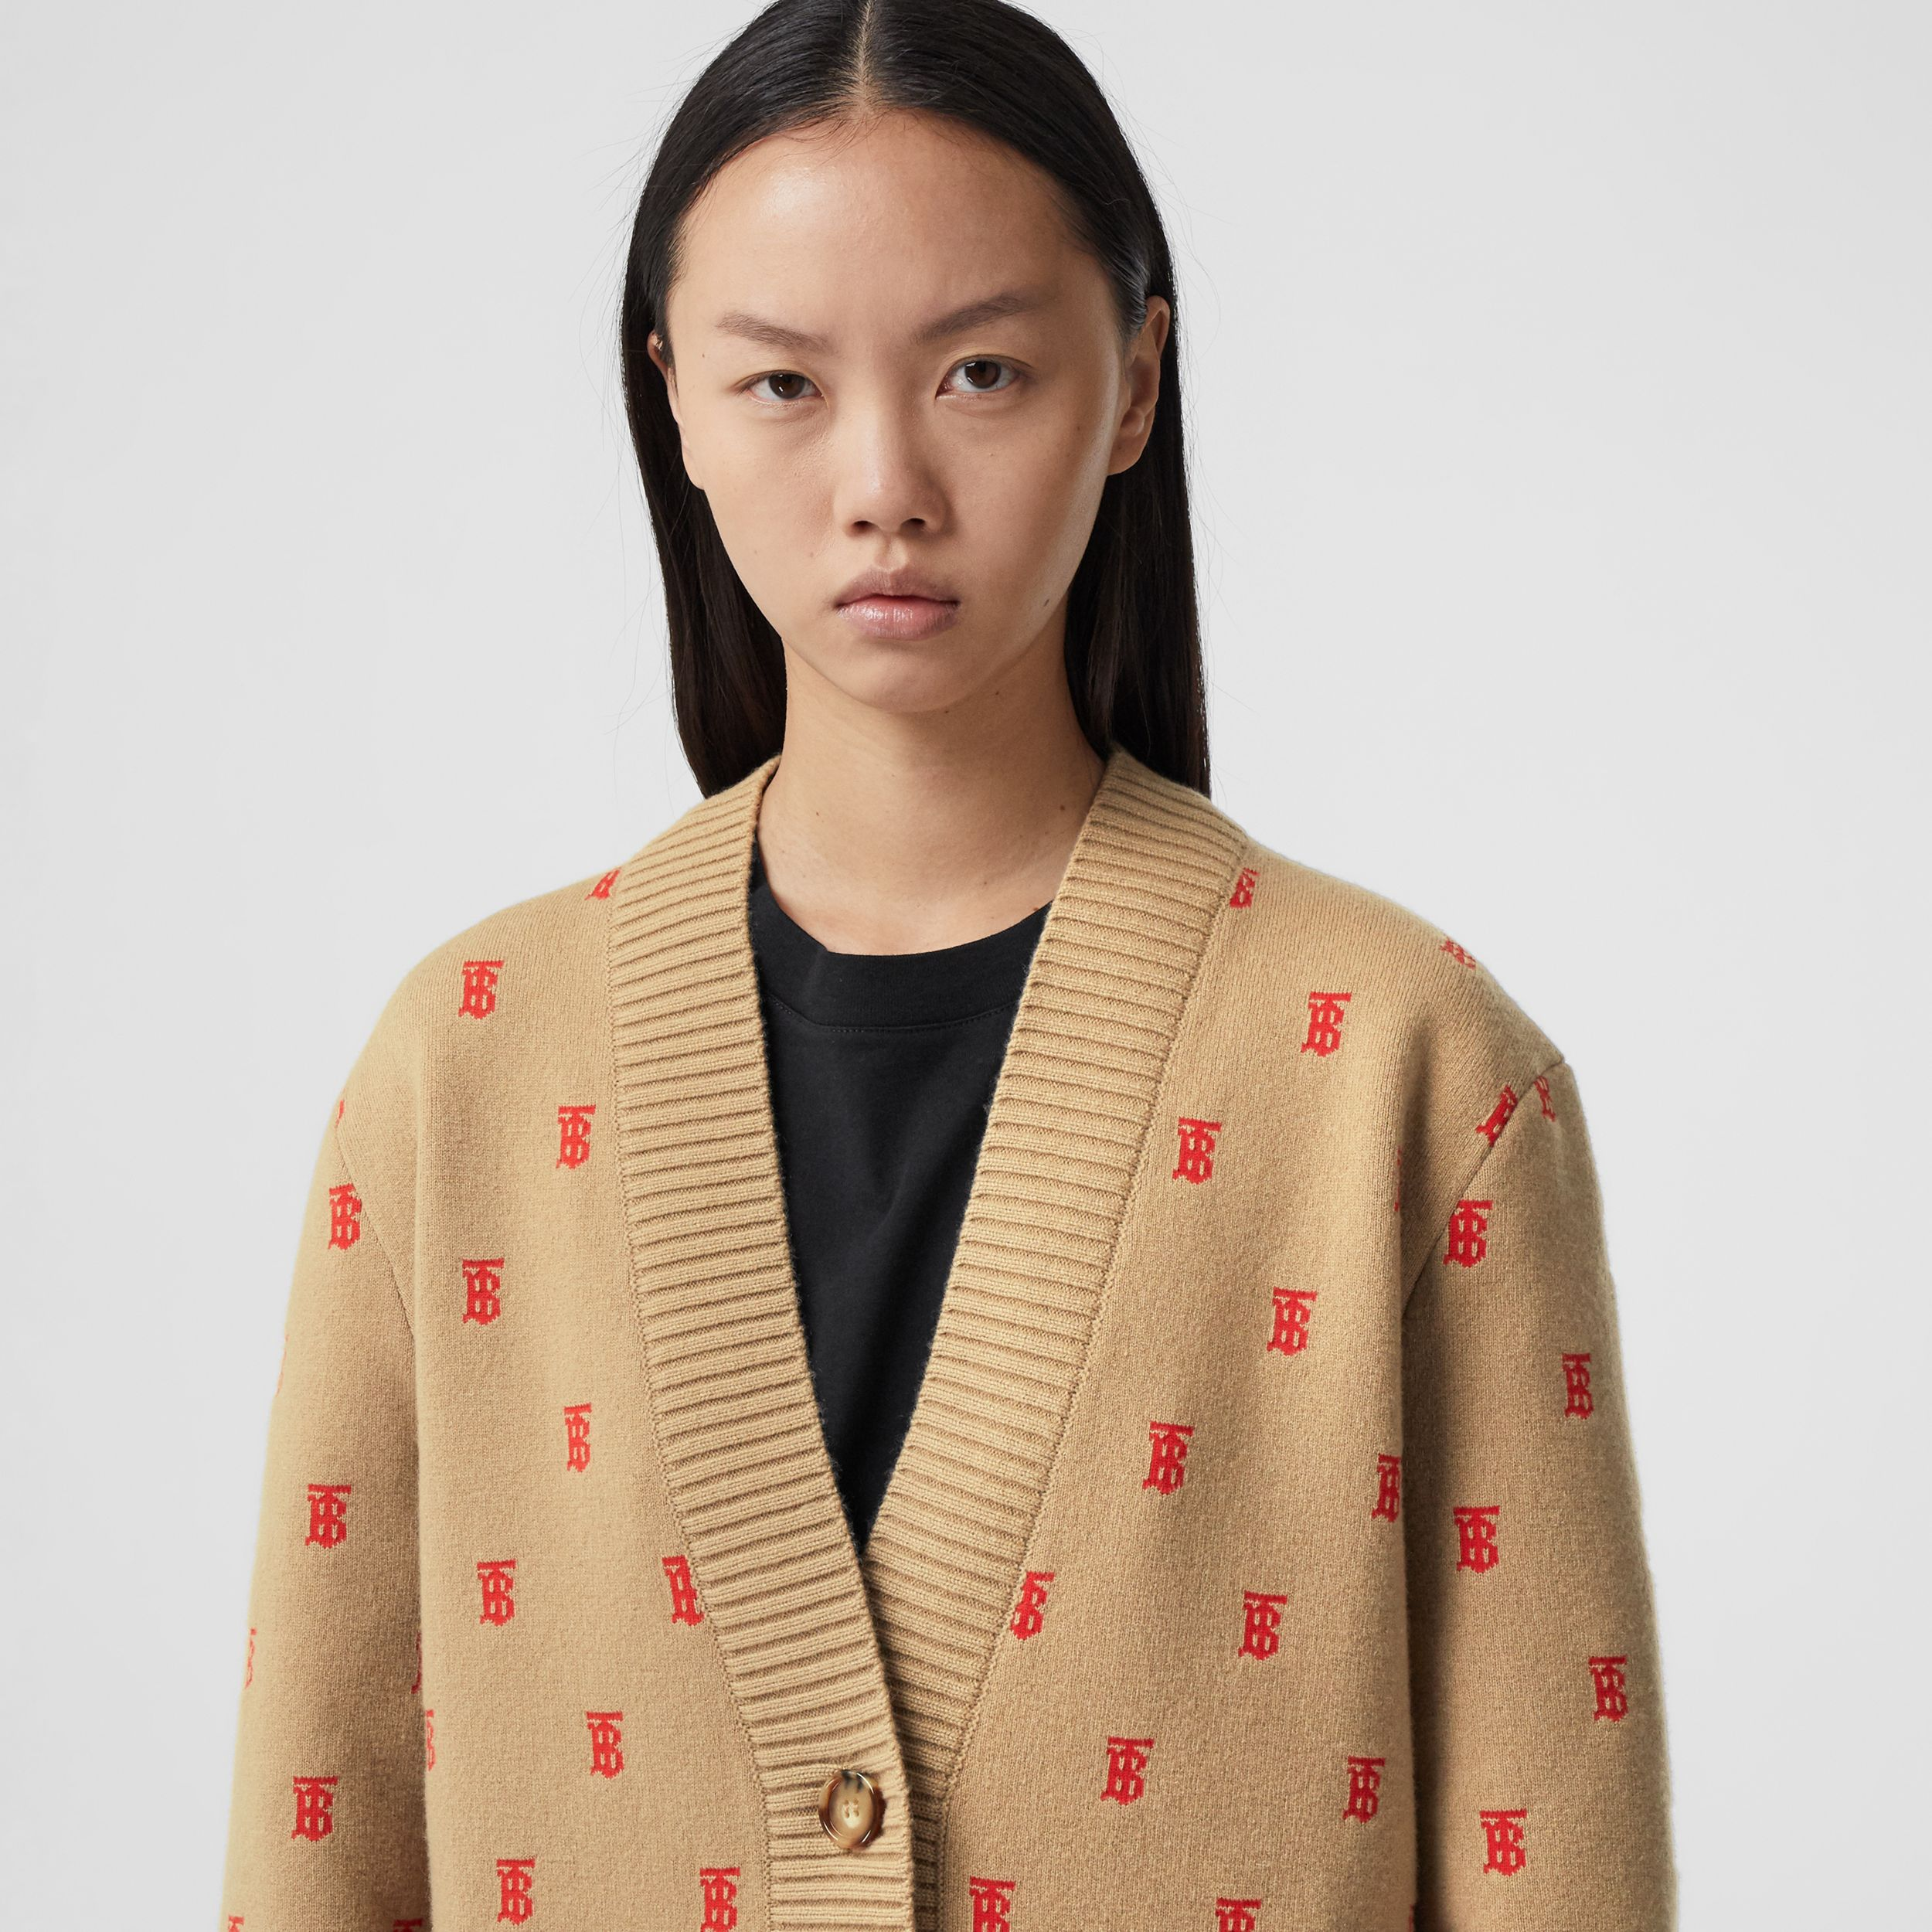 Monogram Wool Cashmere Blend Oversized Cardigan in Archive Beige - Women | Burberry Hong Kong S.A.R. - 2